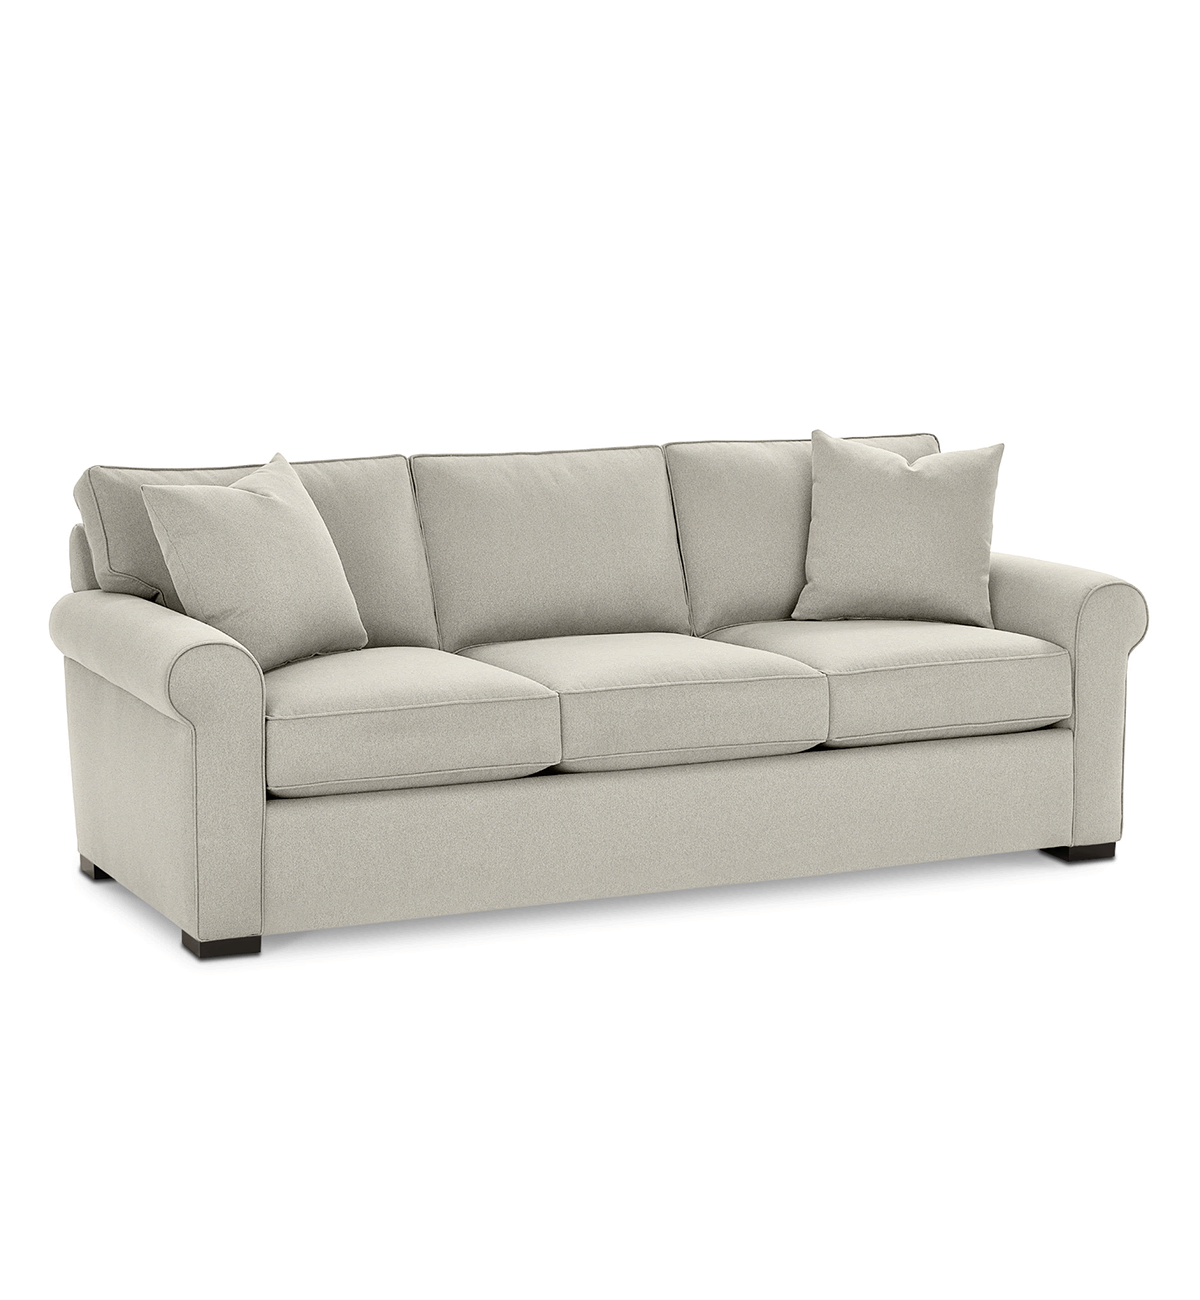 Buy Sofa Bed Online Sofas Couches Macy S